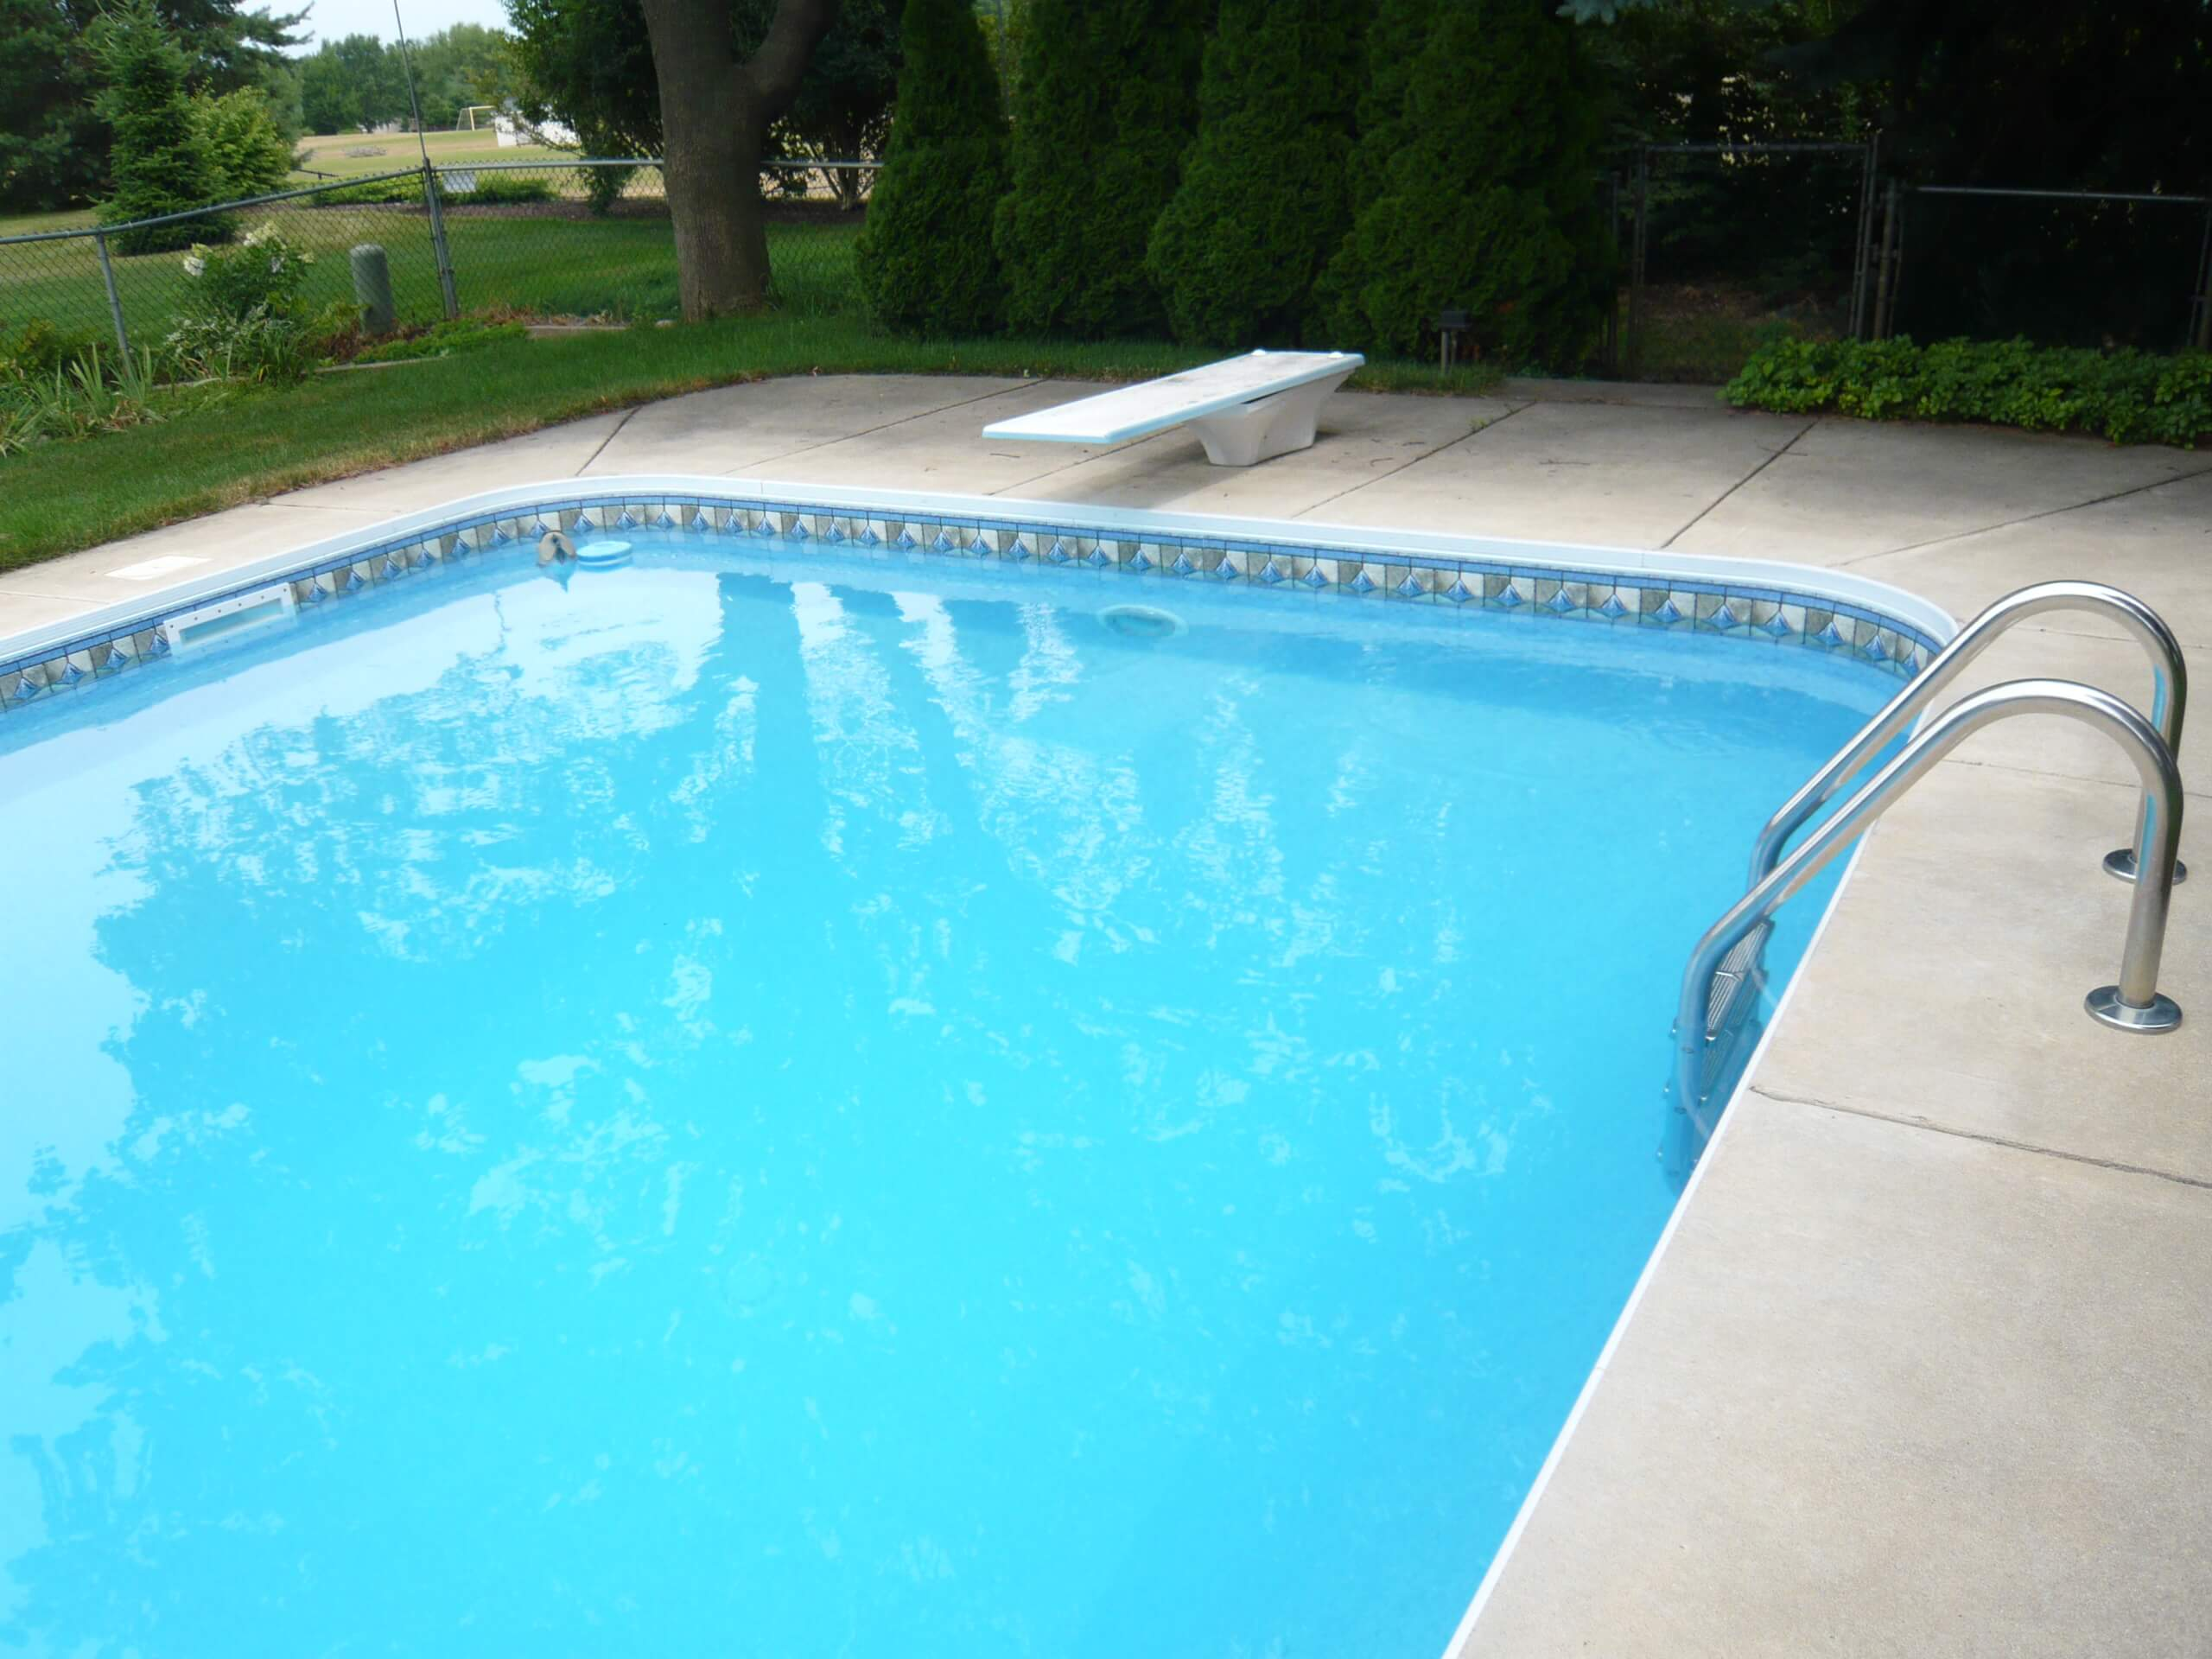 Making sure the building materials of your pool are safe